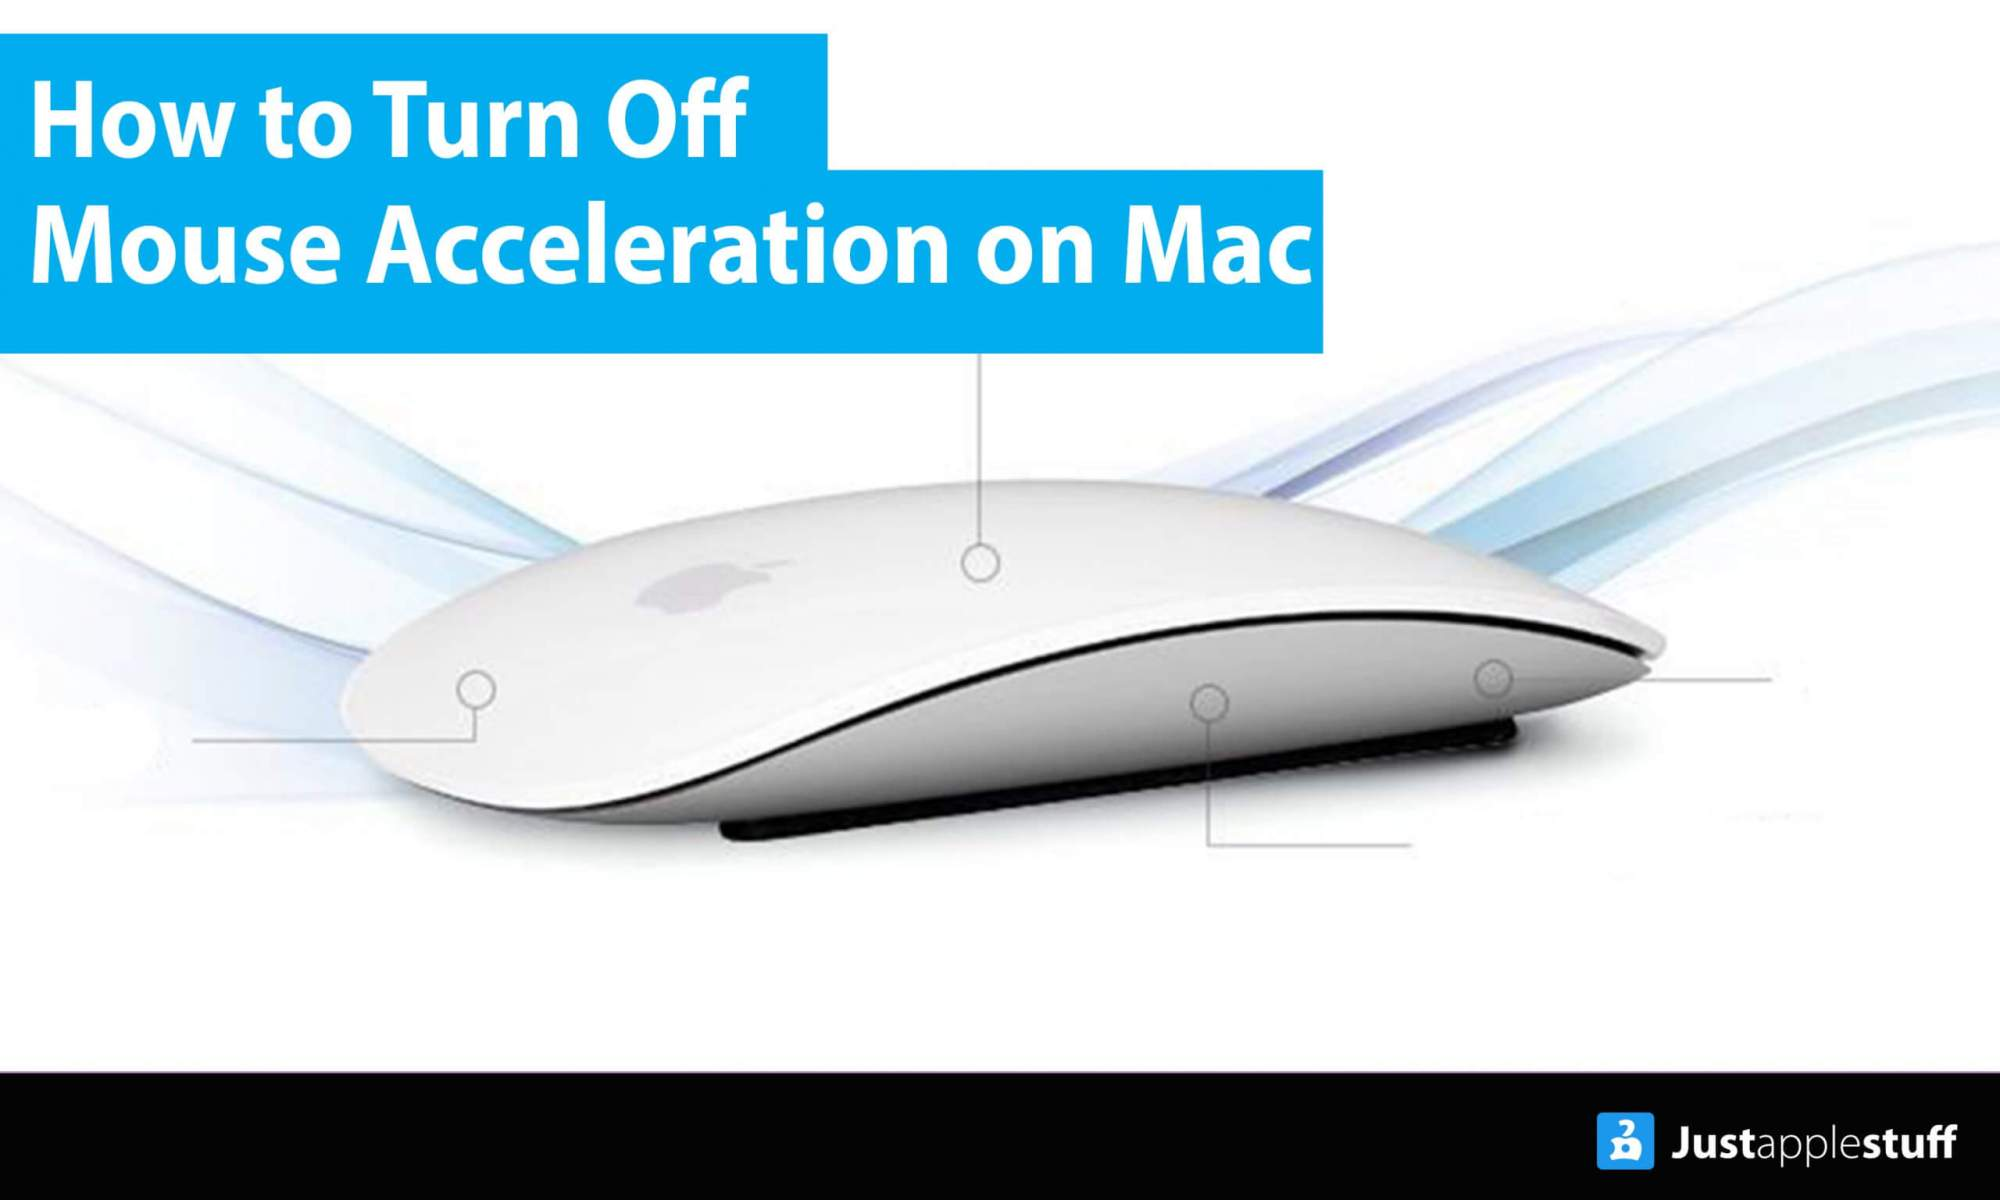 how to Turn Off Mouse Acceleration on Mac